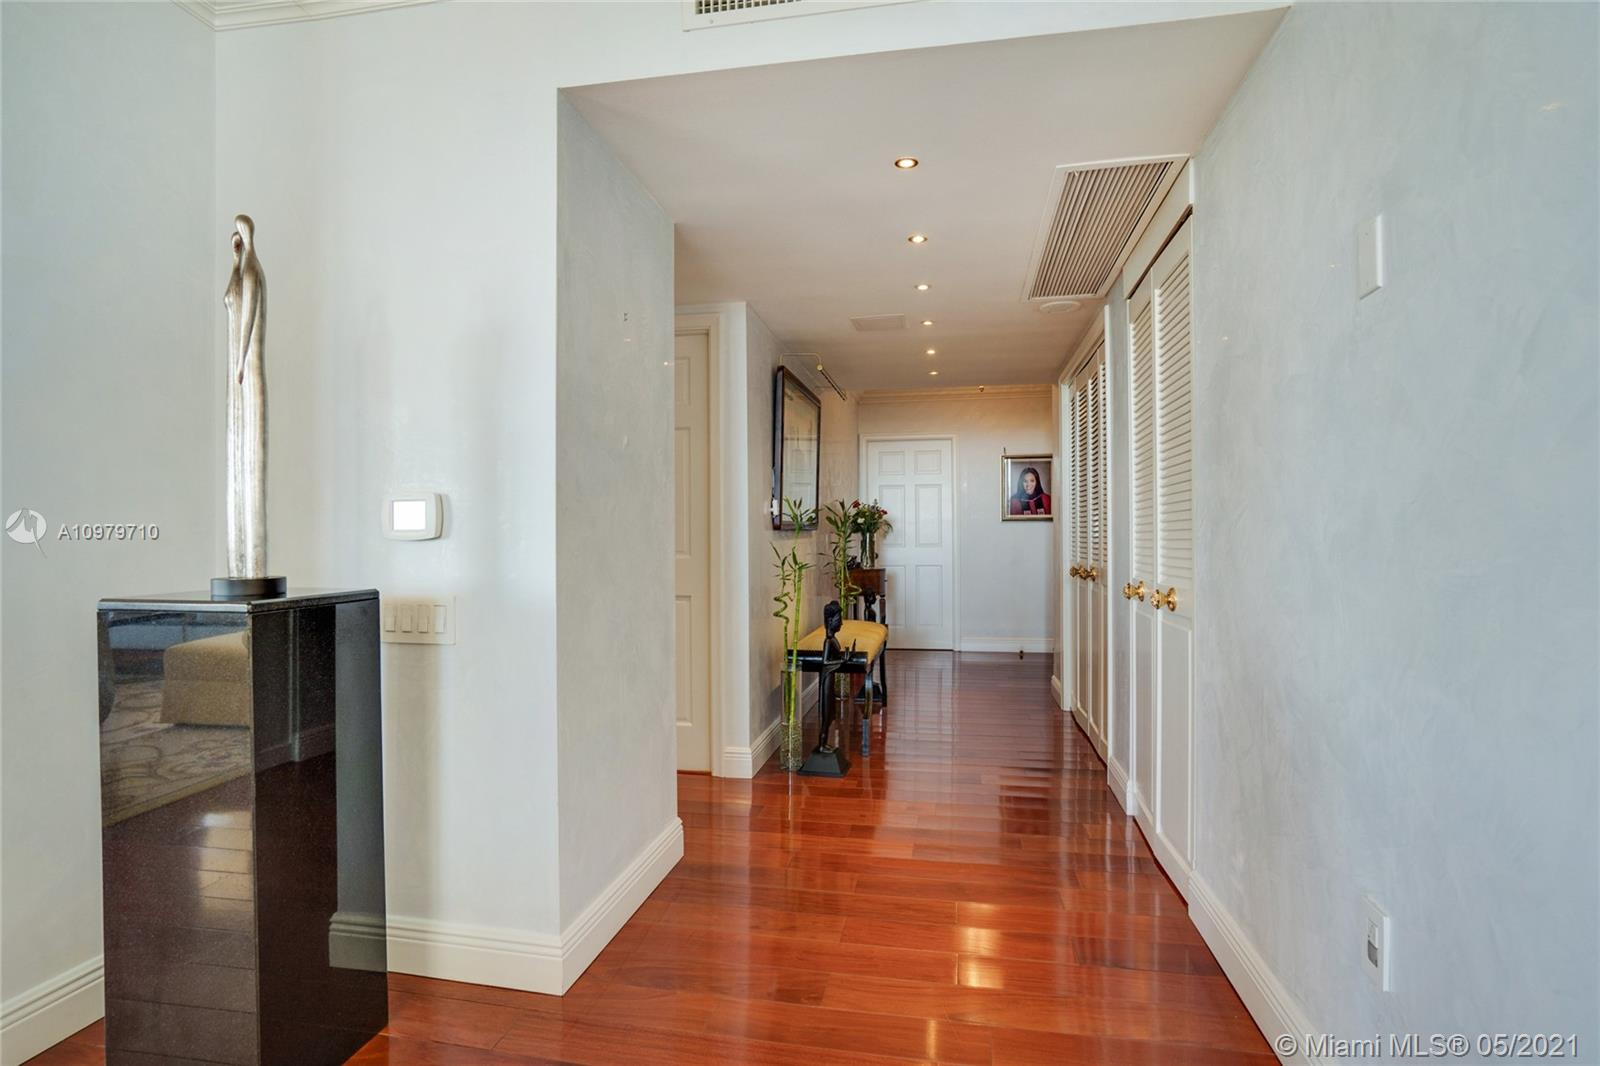 Photo of 9801 Collins Ave #10R, Bal Harbour, Florida, 33154 - Views from the balcony